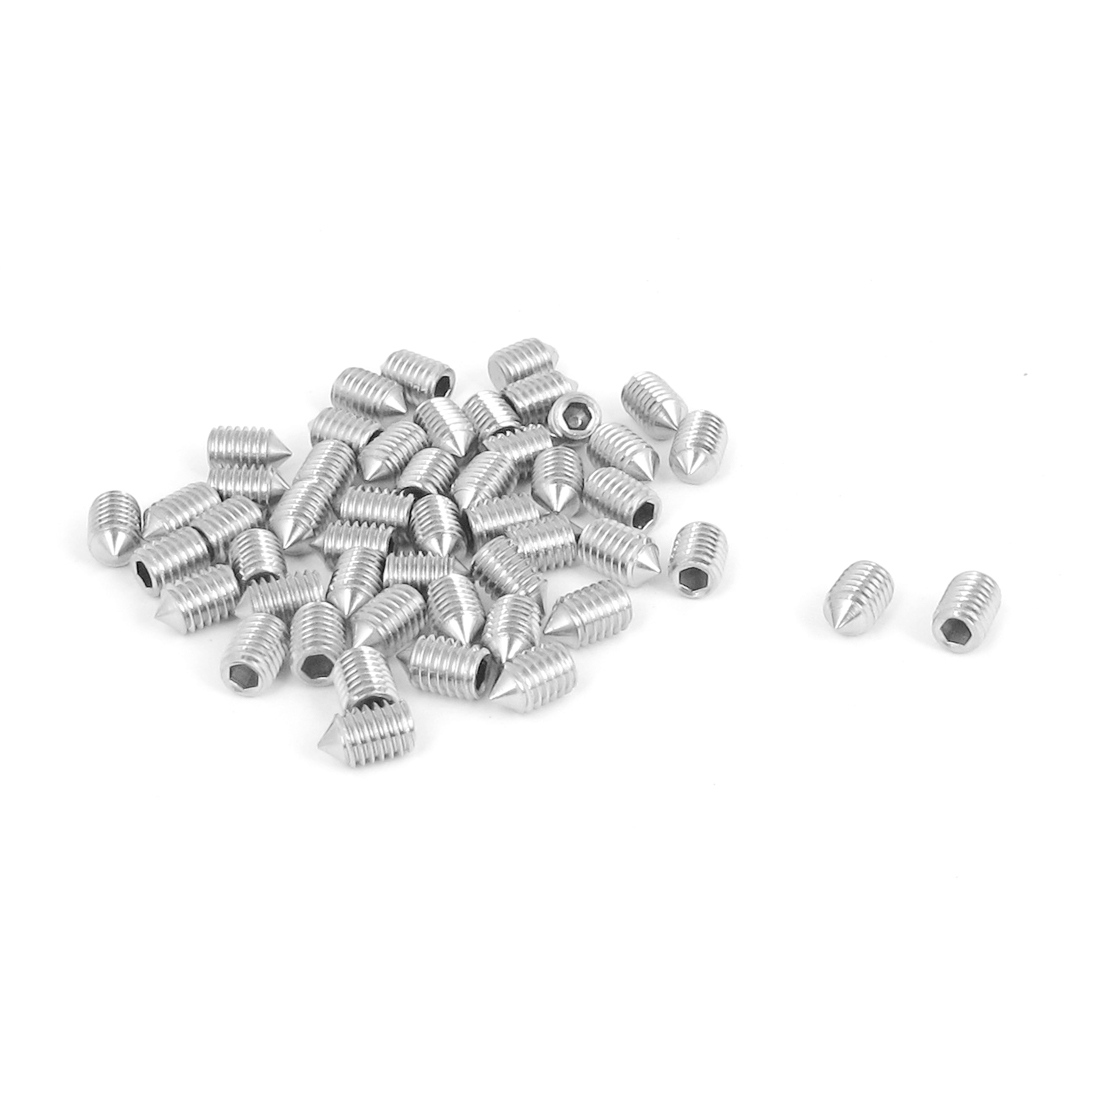 M5x8mm 304 Stainless Steel Cone Point Hexagon Socket Grub Screws 50pcs